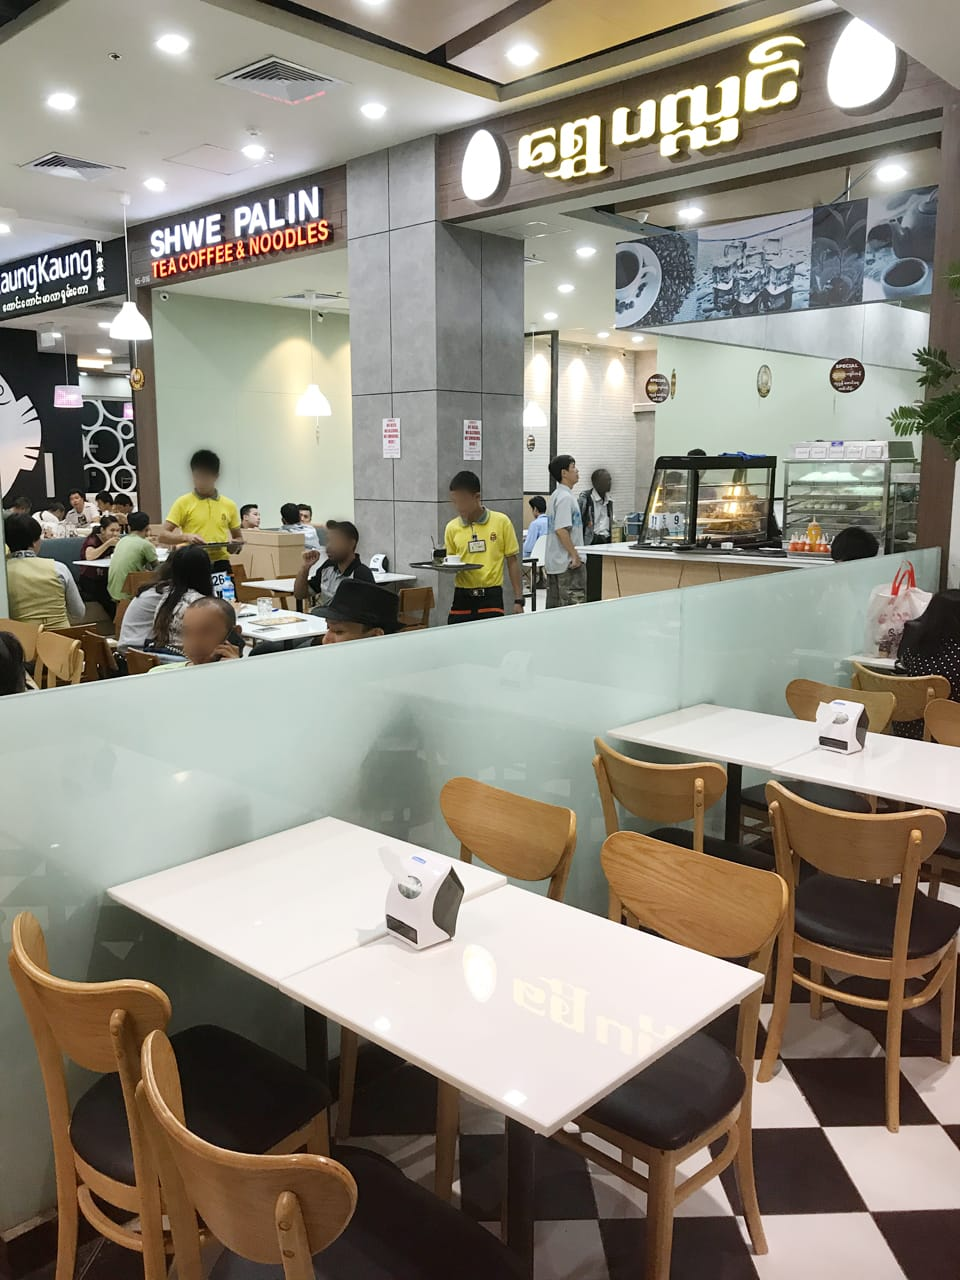 Shwe Palin Restaurant - Junction City, Yangon, Myanmar | Products Seen: [Journey Sidechair]